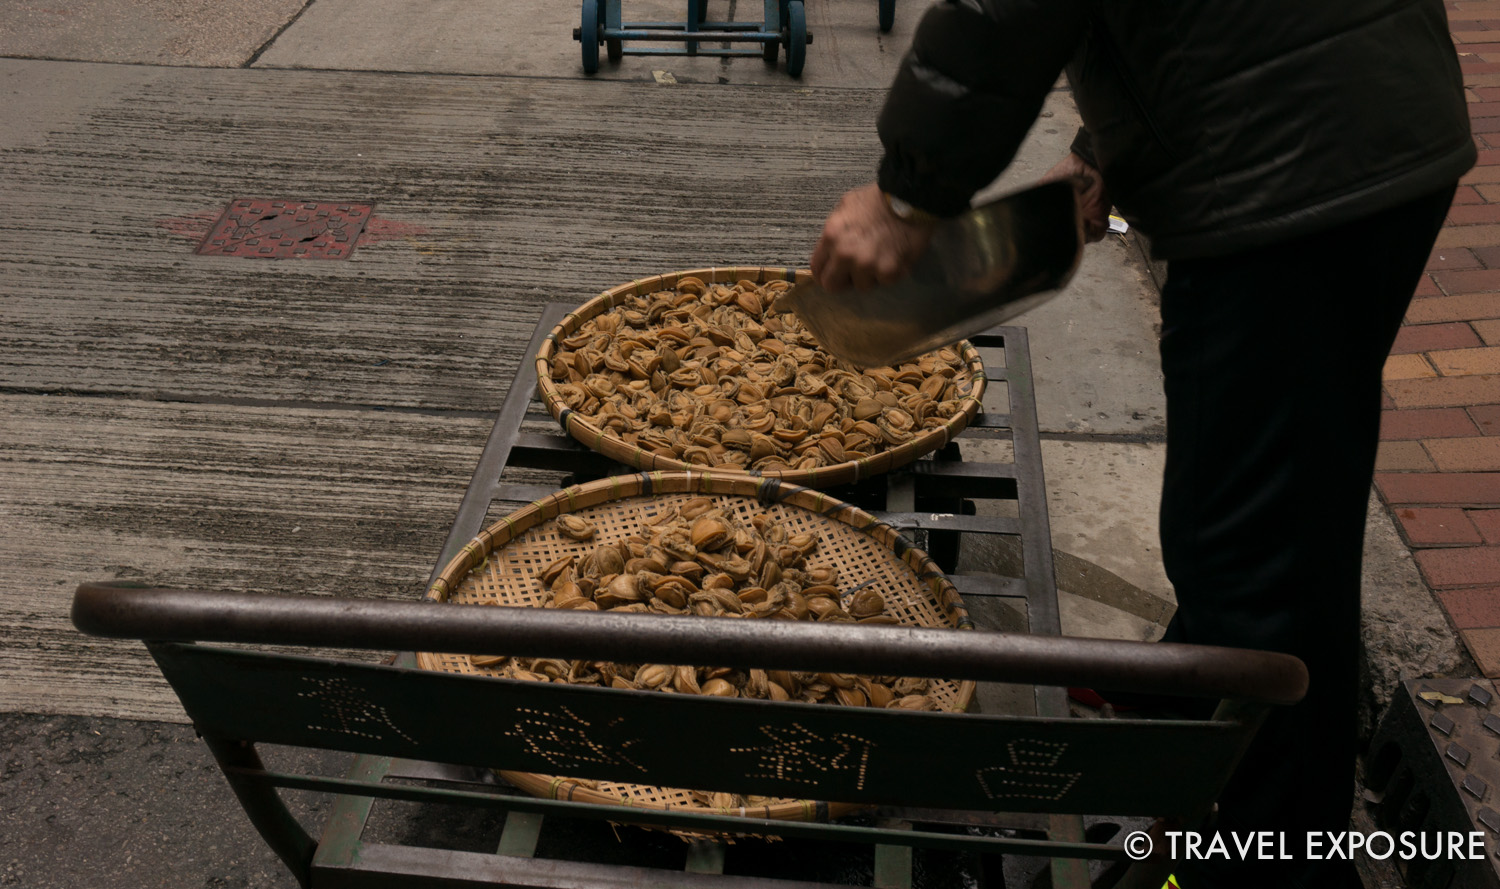 Dried seafood, probably scallops